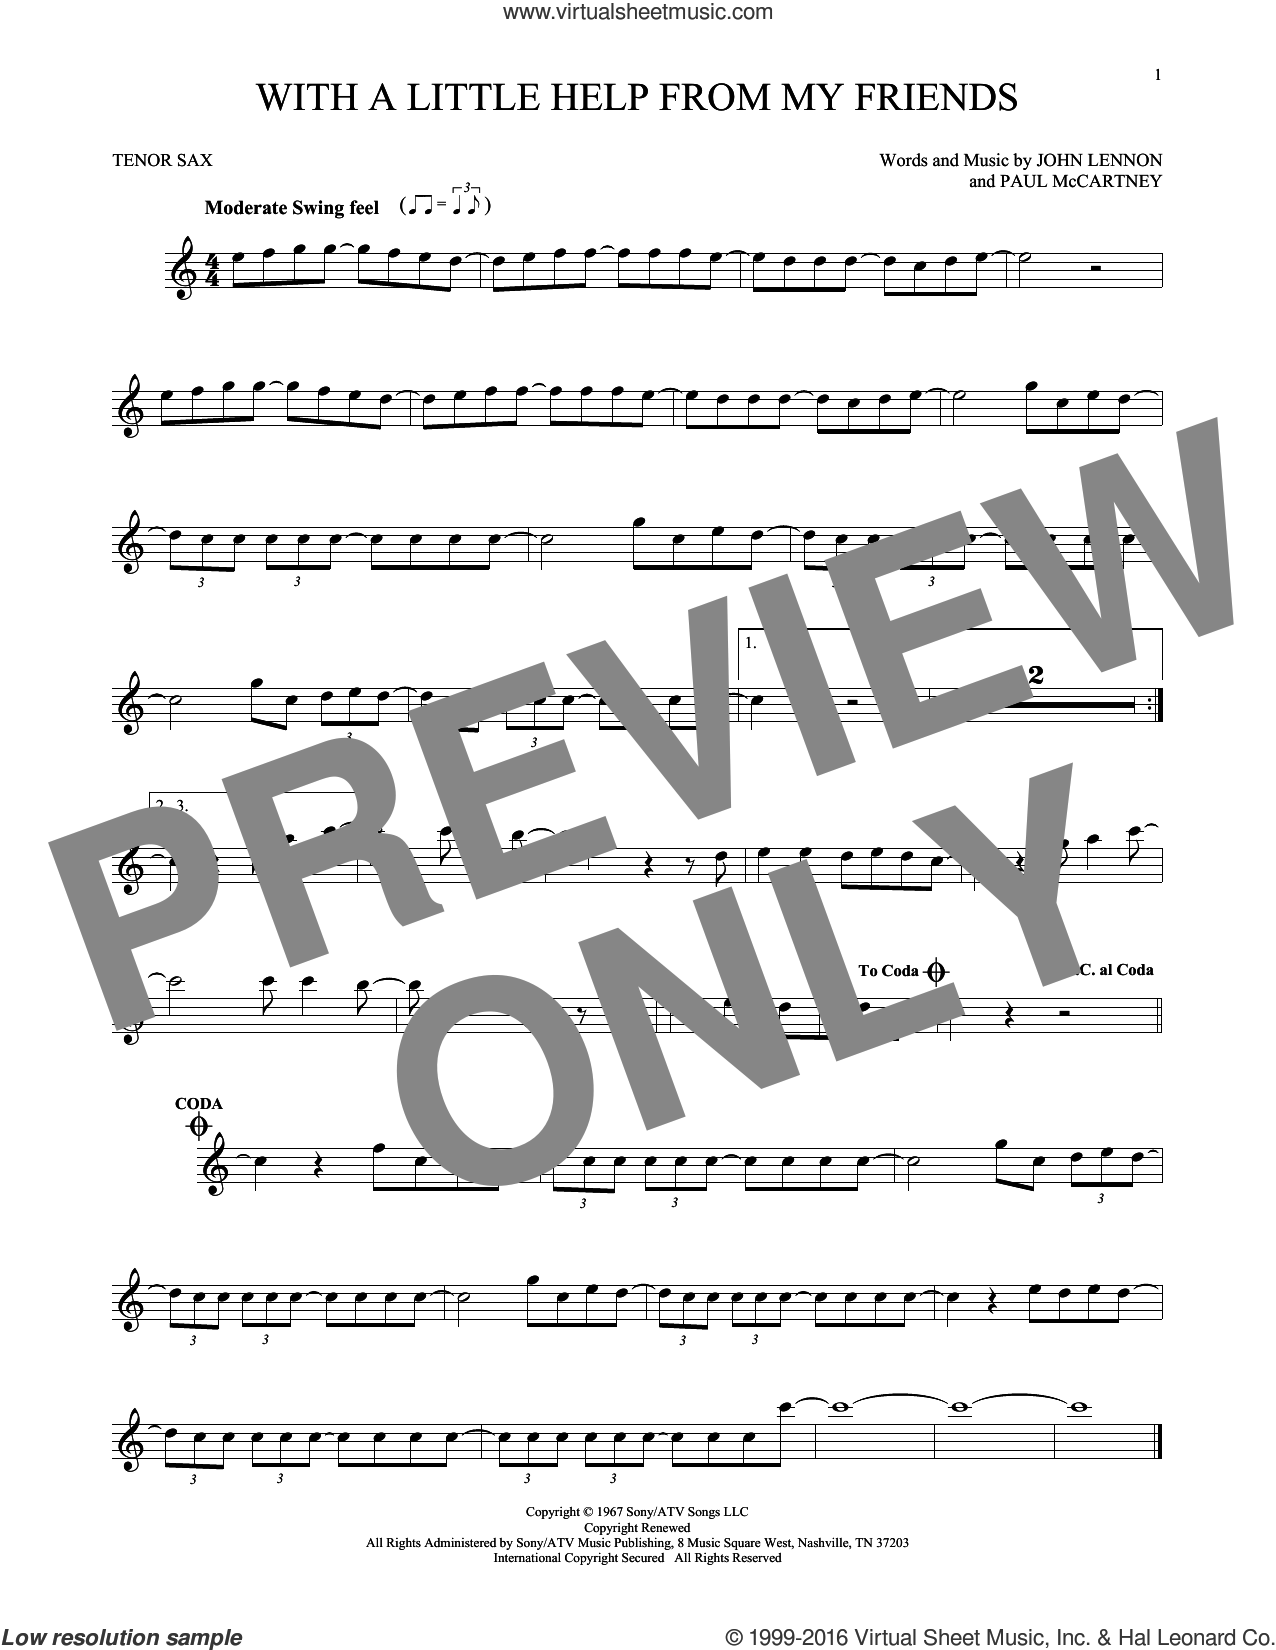 With A Little Help From My Friends sheet music for tenor saxophone solo by Paul McCartney, Joe Cocker, The Beatles and John Lennon. Score Image Preview.